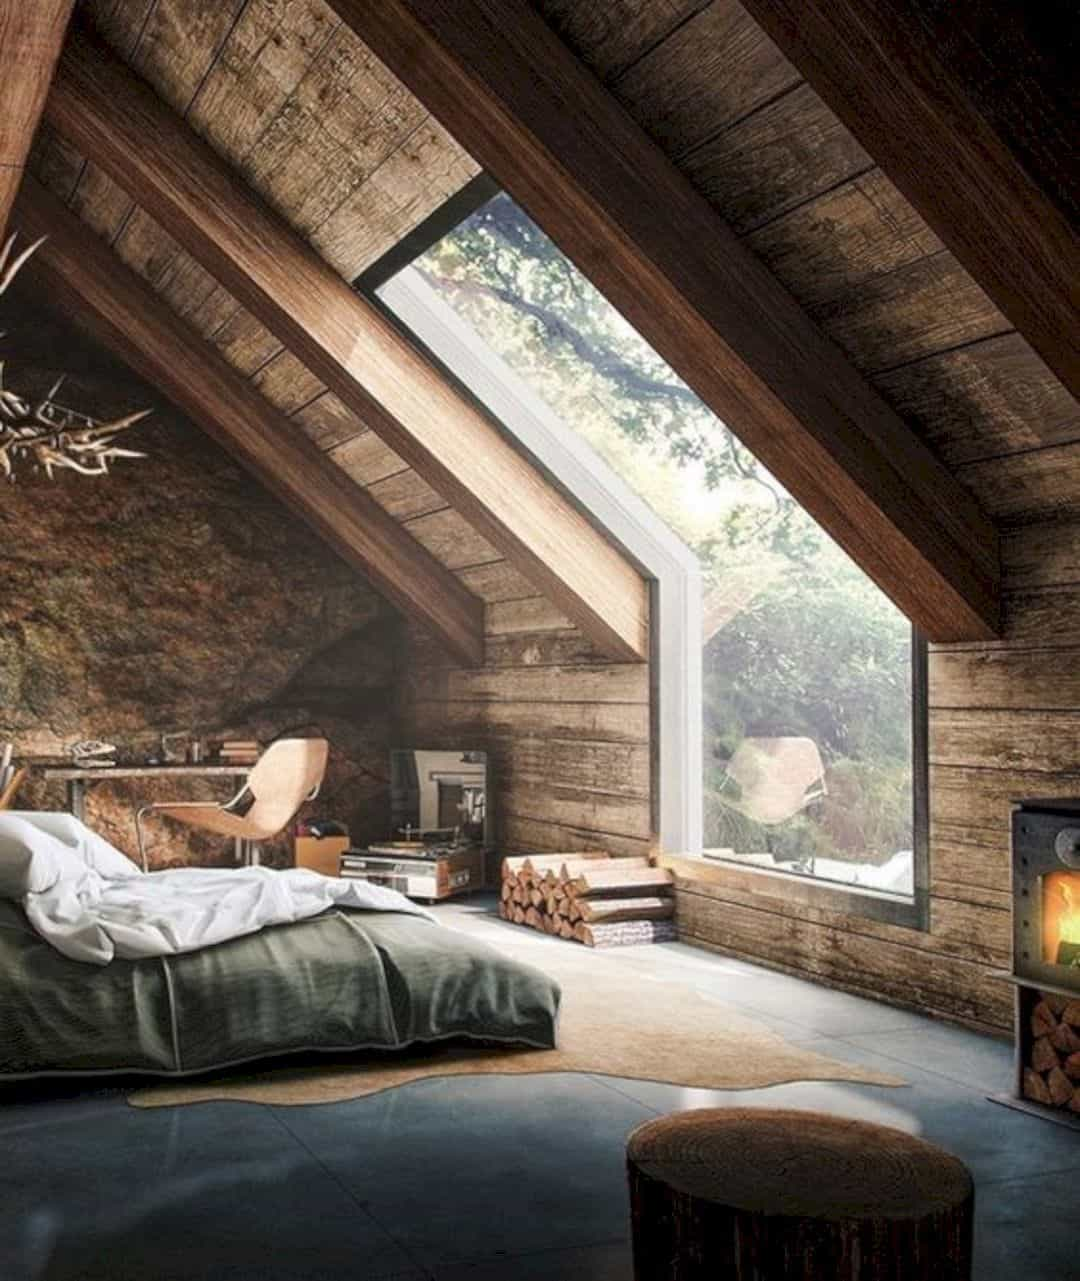 16 ideas to bring out a rustic interior design at home 16